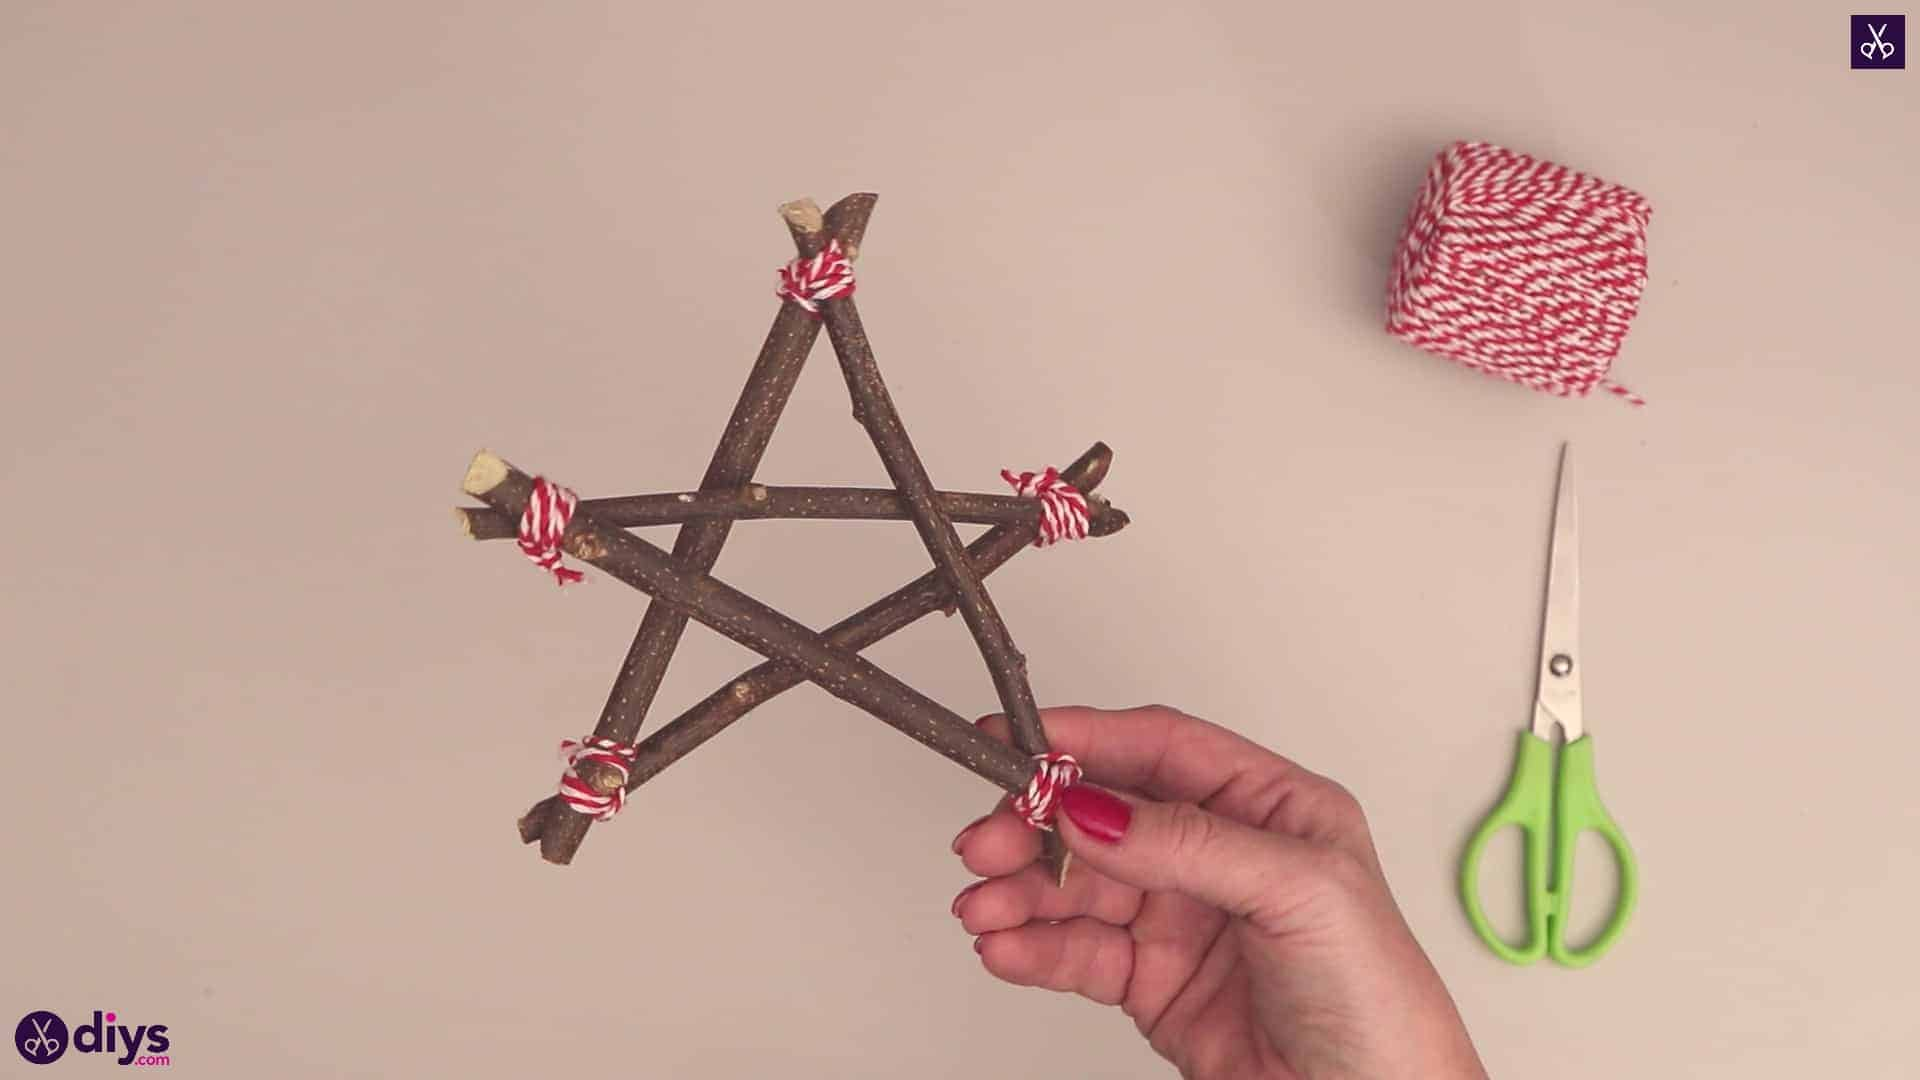 Diy twig star craft step 8